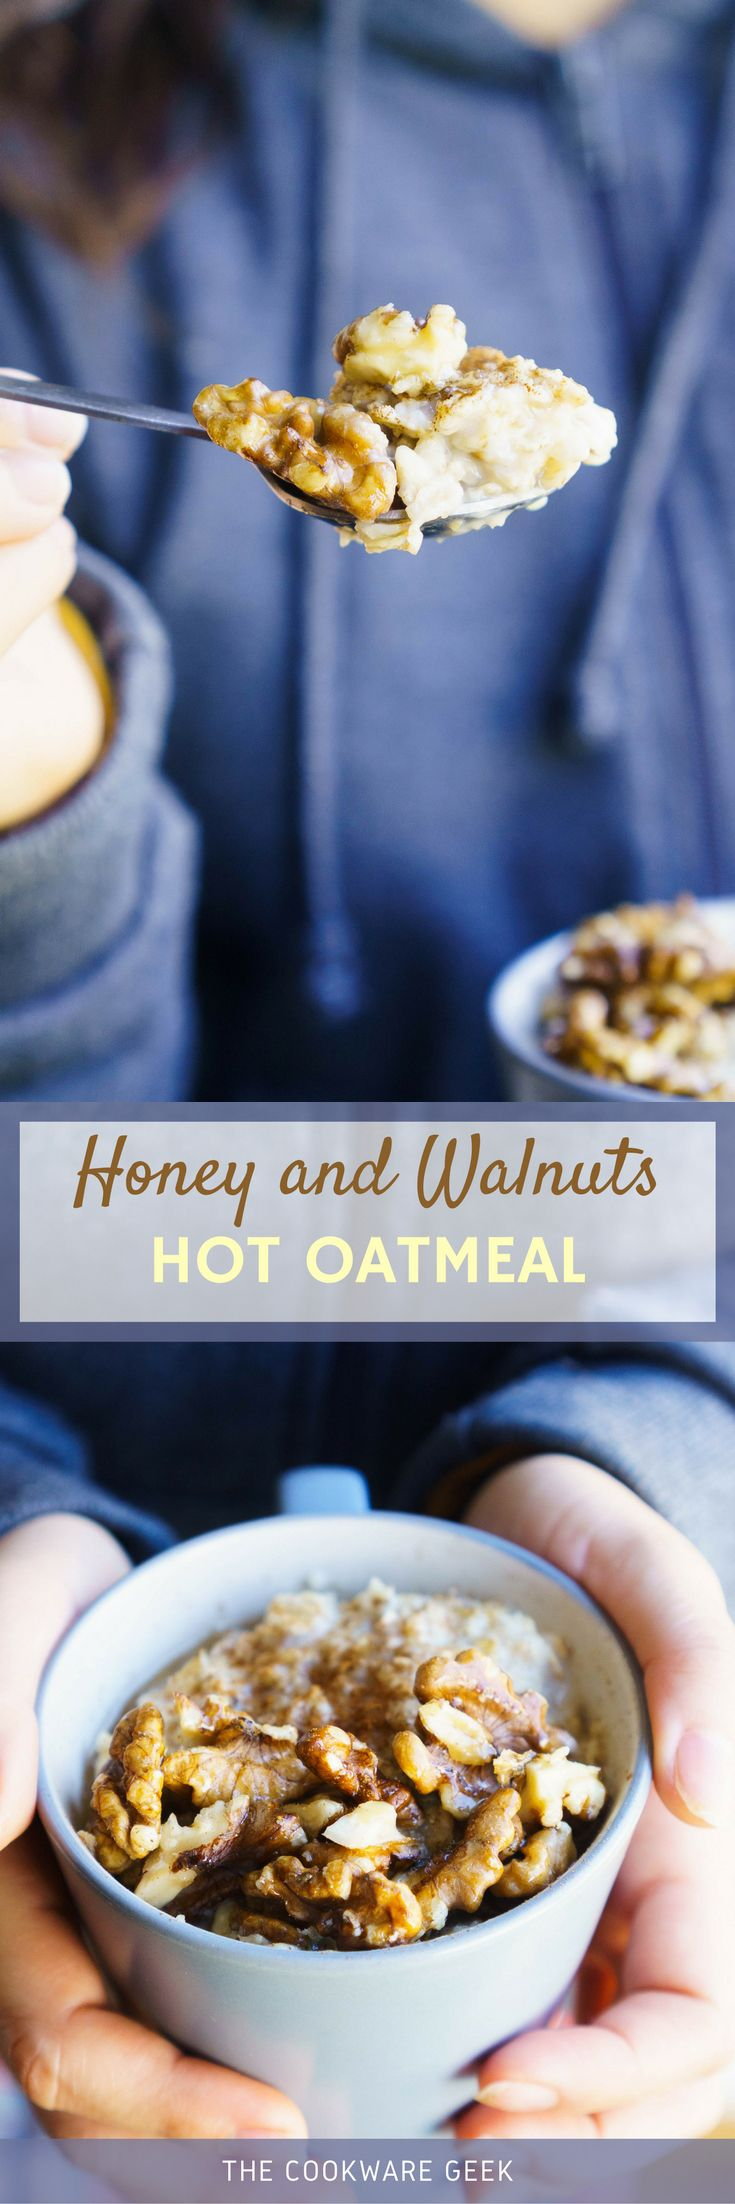 Honey and Walnuts Hot Oatmeal | The Cookware Geek